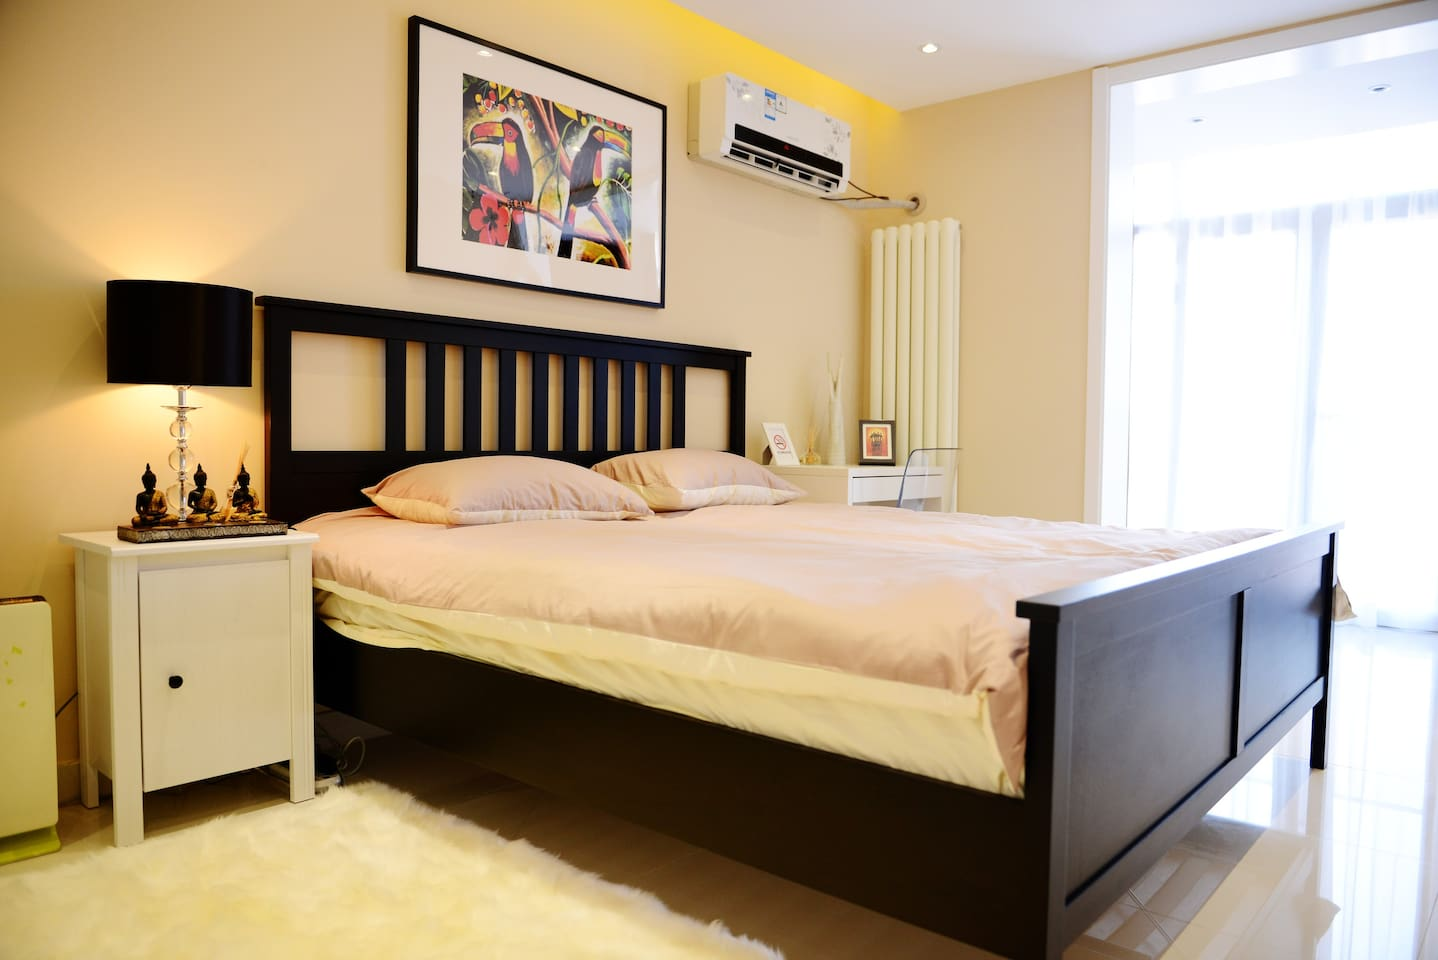 Bedroom #1 with King-size bed